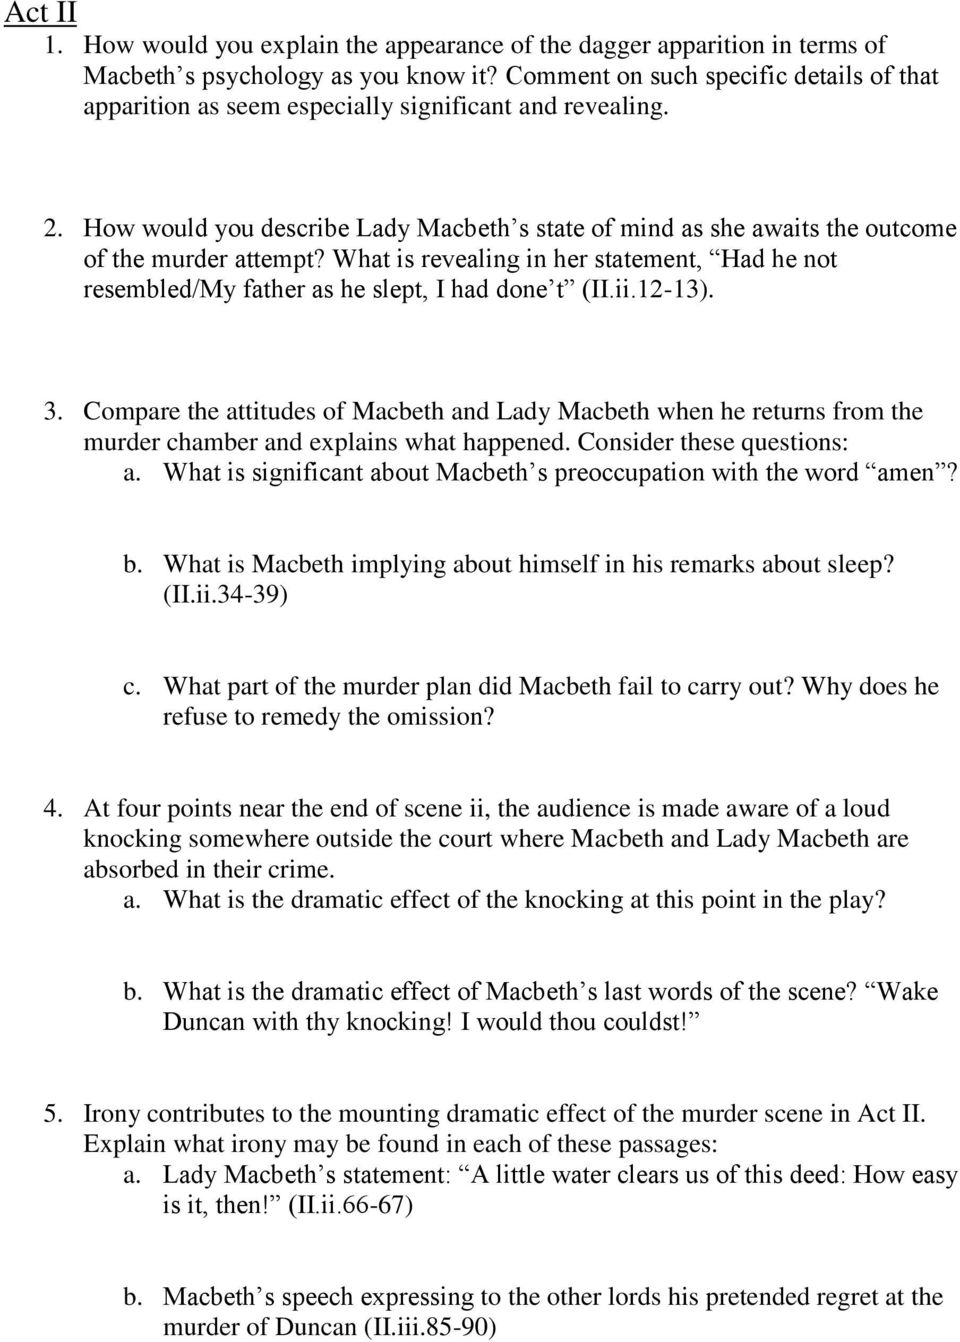 macbeth character analysis essay macbeth essay themes macbeth  lady macbeth essay question lady macbeth essay question